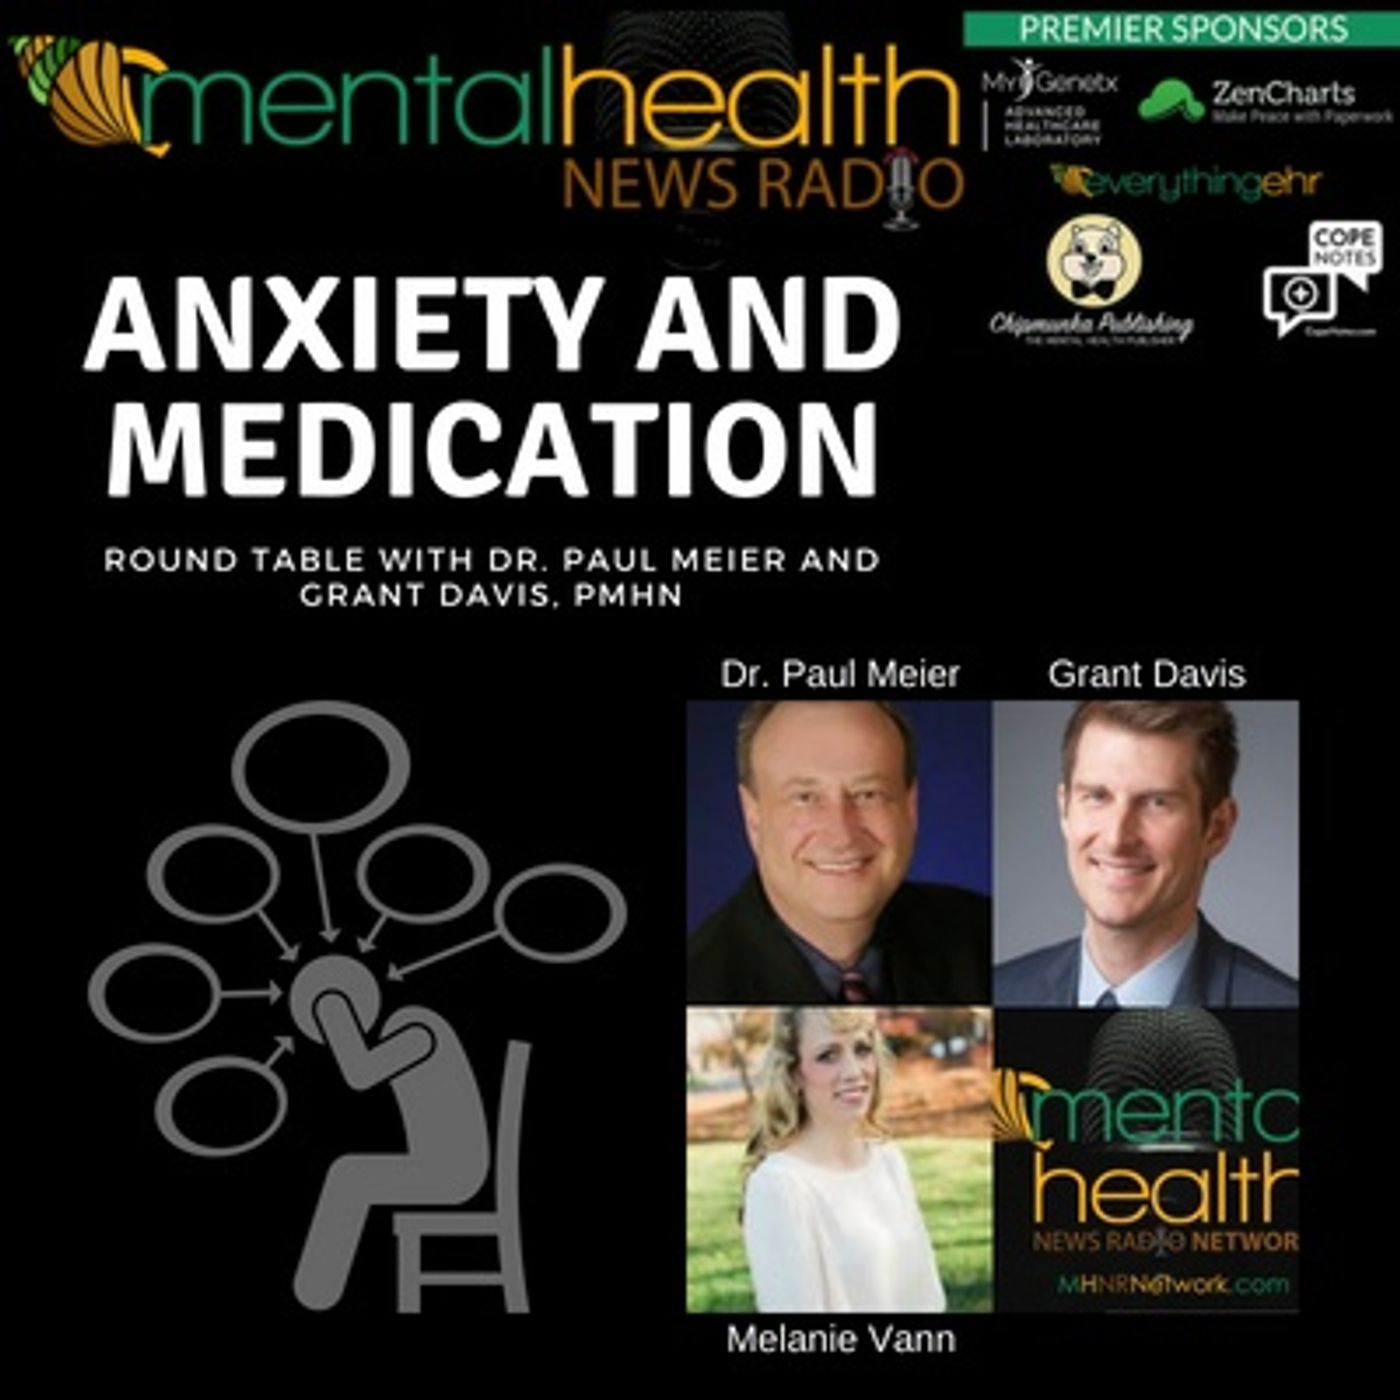 Mental Health News Radio - Round Table with Dr. Paul Meier: Anxiety and Medication